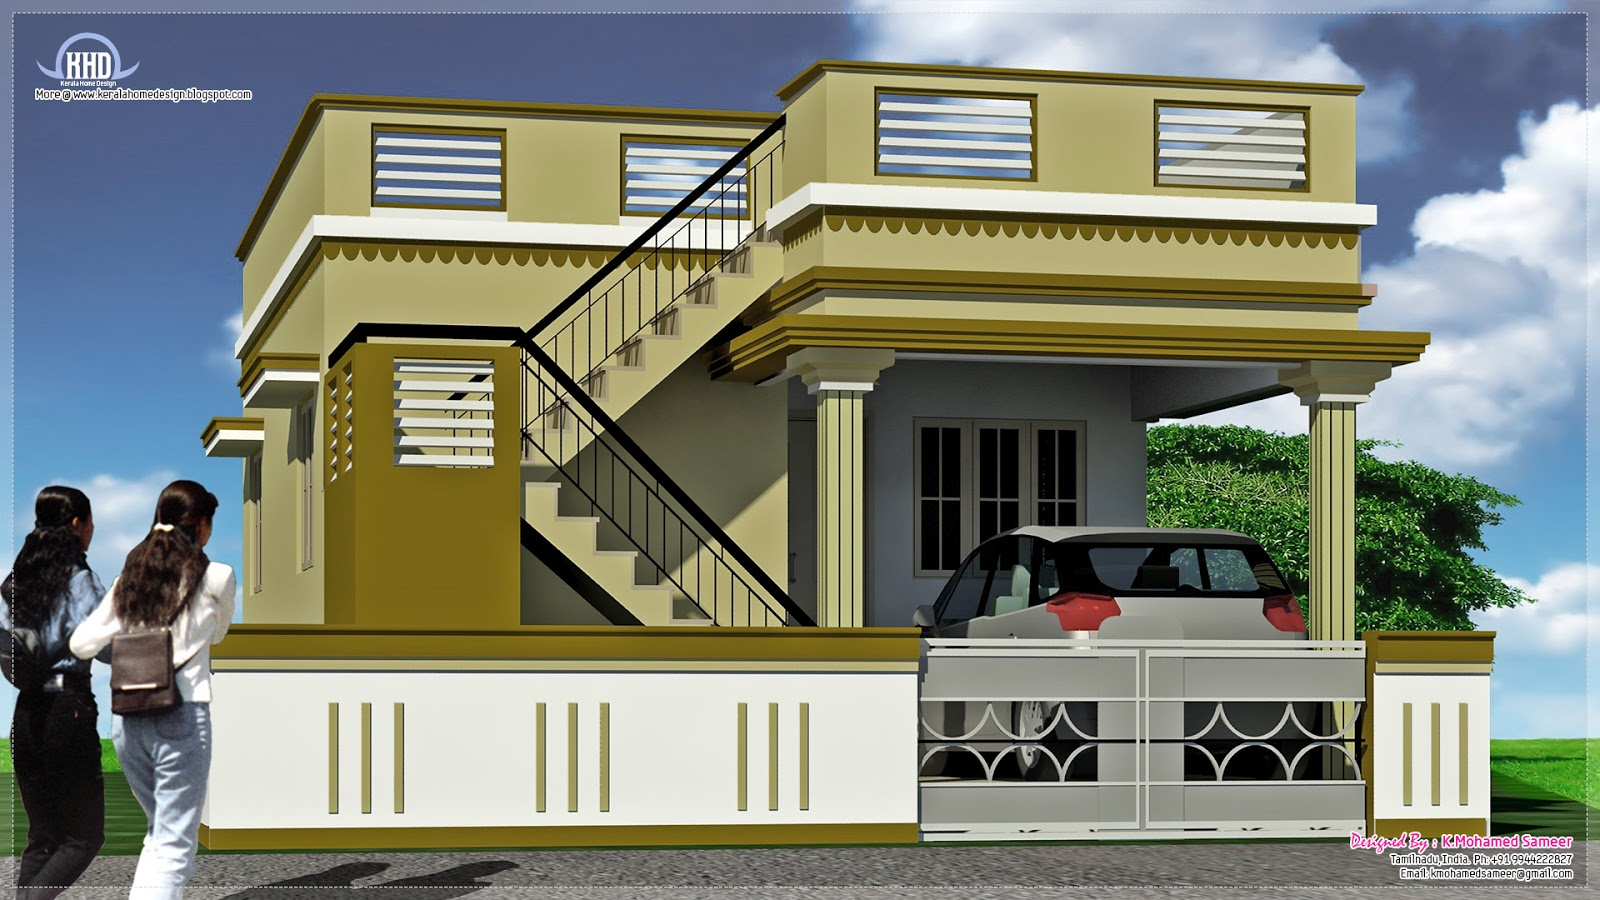 2 south indian house exterior designs house design plans - Design of home ...